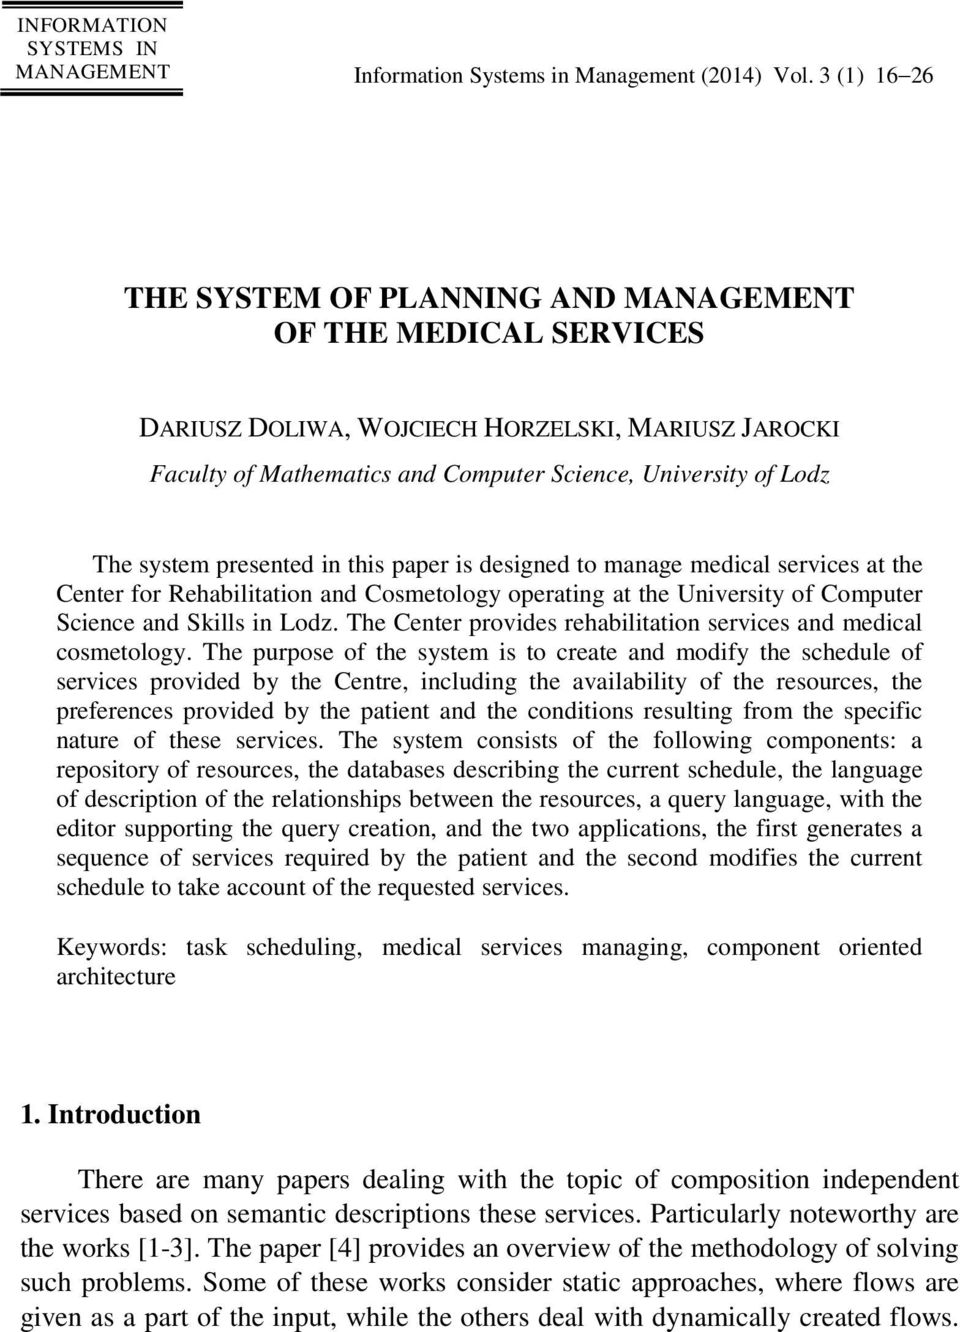 system presented in this paper is designed to manage medical services at the Center for Rehabilitation and Cosmetology operating at the University of Computer Science and Skills in Lodz.